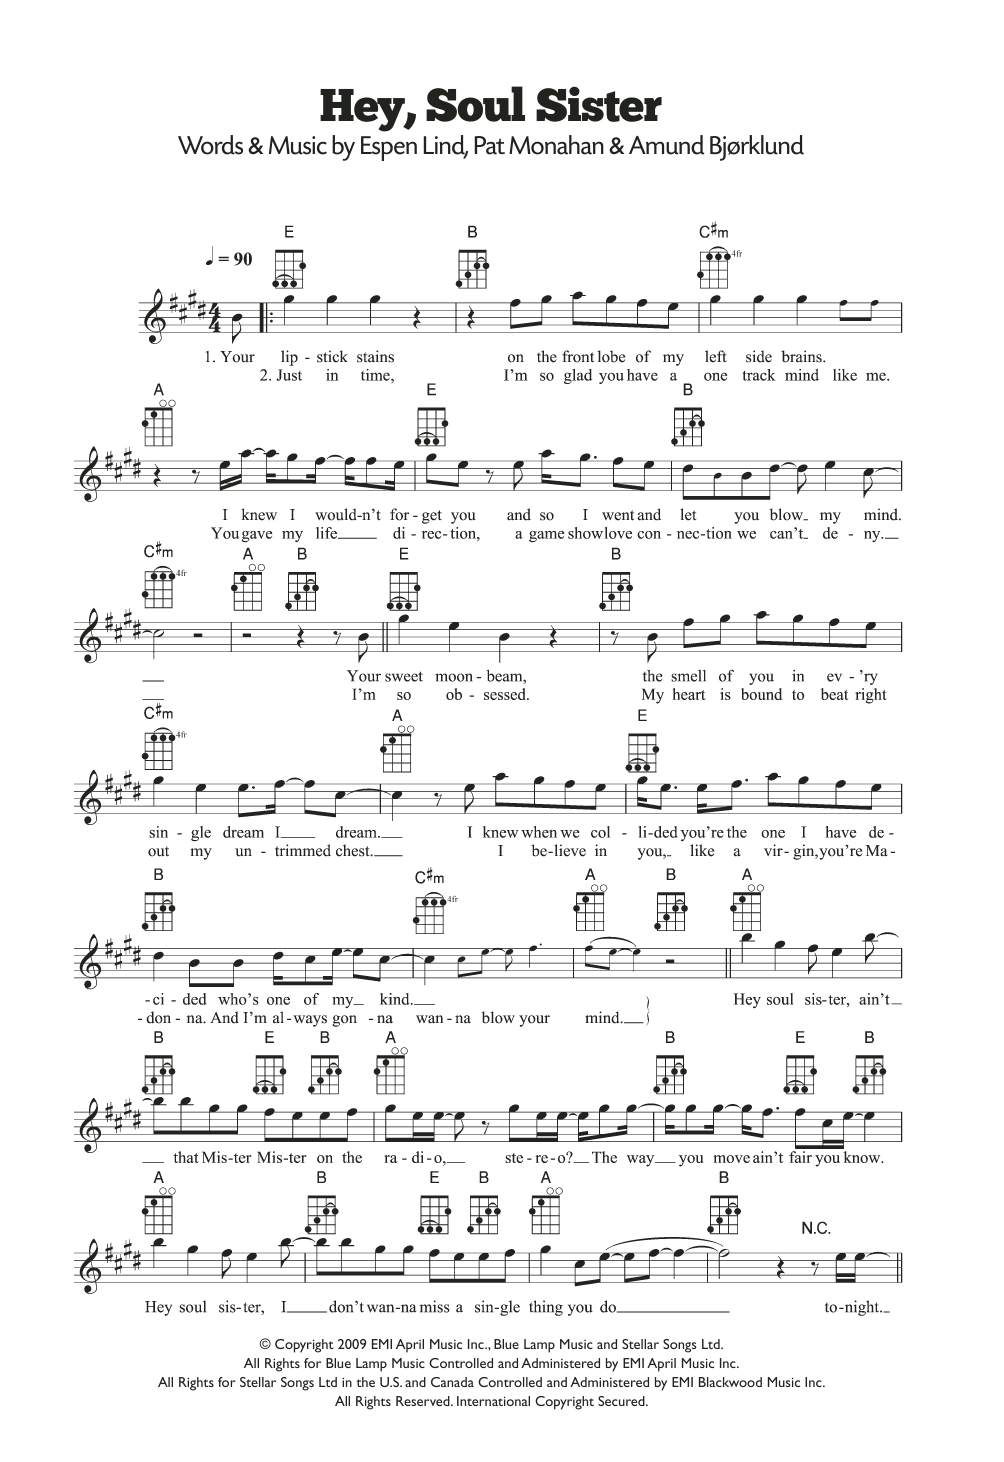 Hey soul sister sheet music direct hey soul sister 199 artist train format ukulele hexwebz Image collections